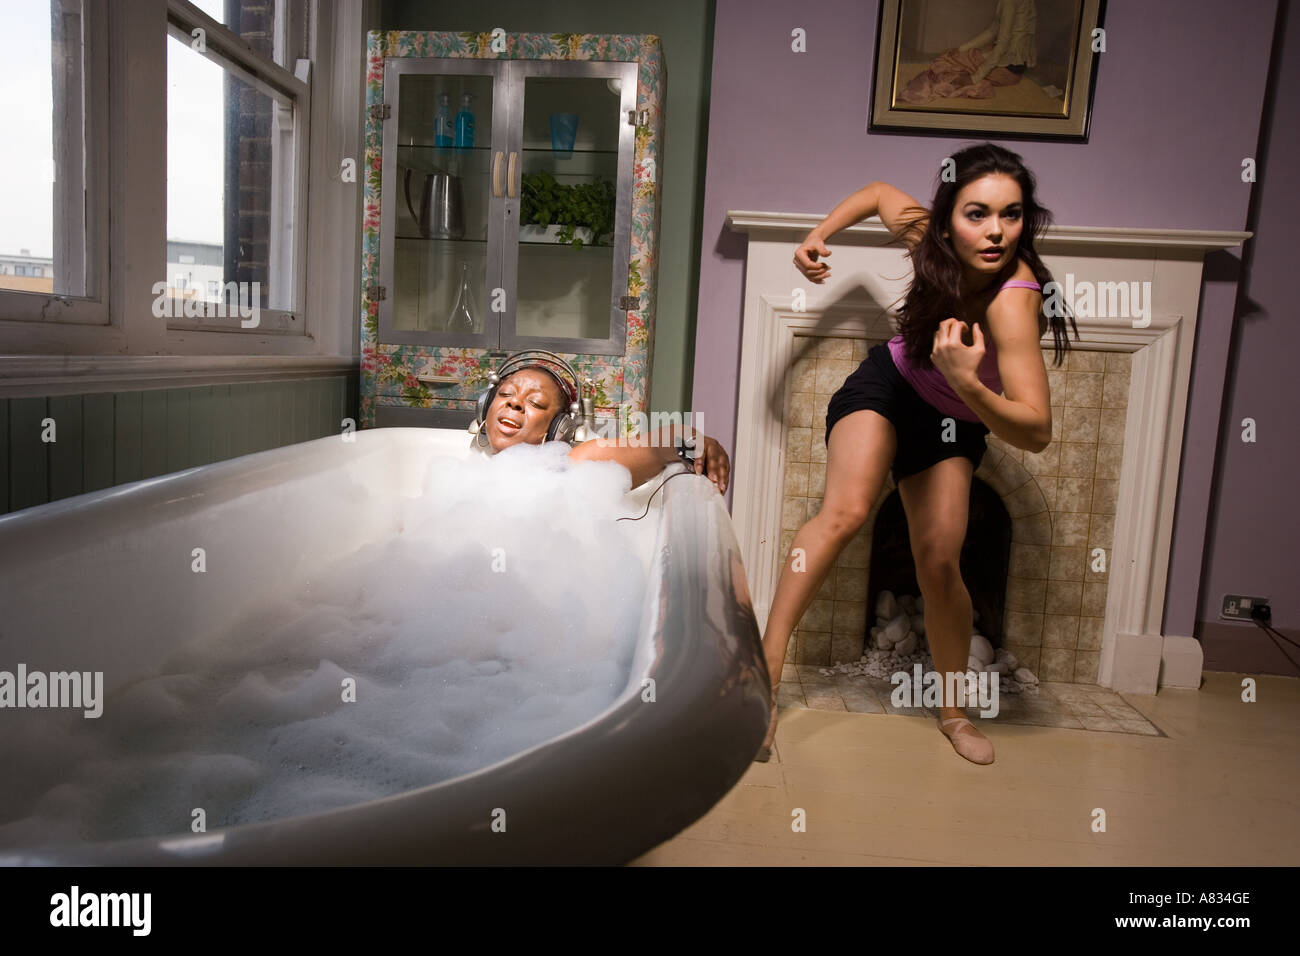 Two young women in the bathroom, one immersed in the bathtub with ...